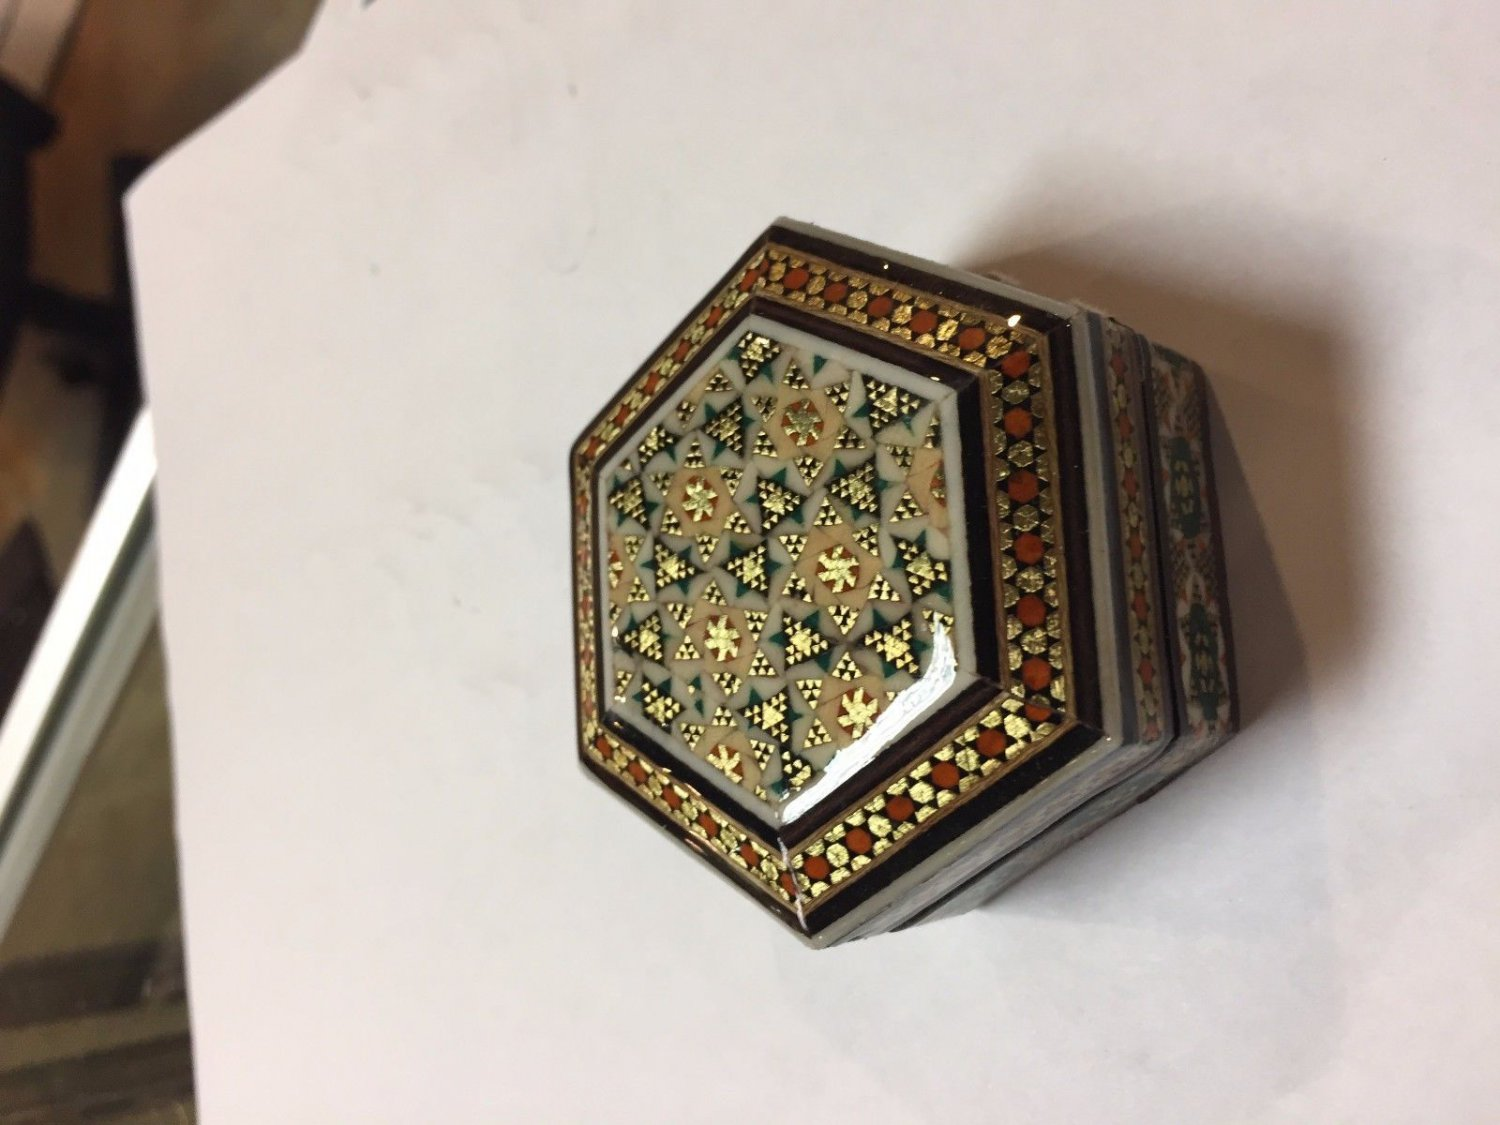 INLAID TRINKET WOODEN BOX BRASS khatamkari ART DECORATIVE GIFT DEAL